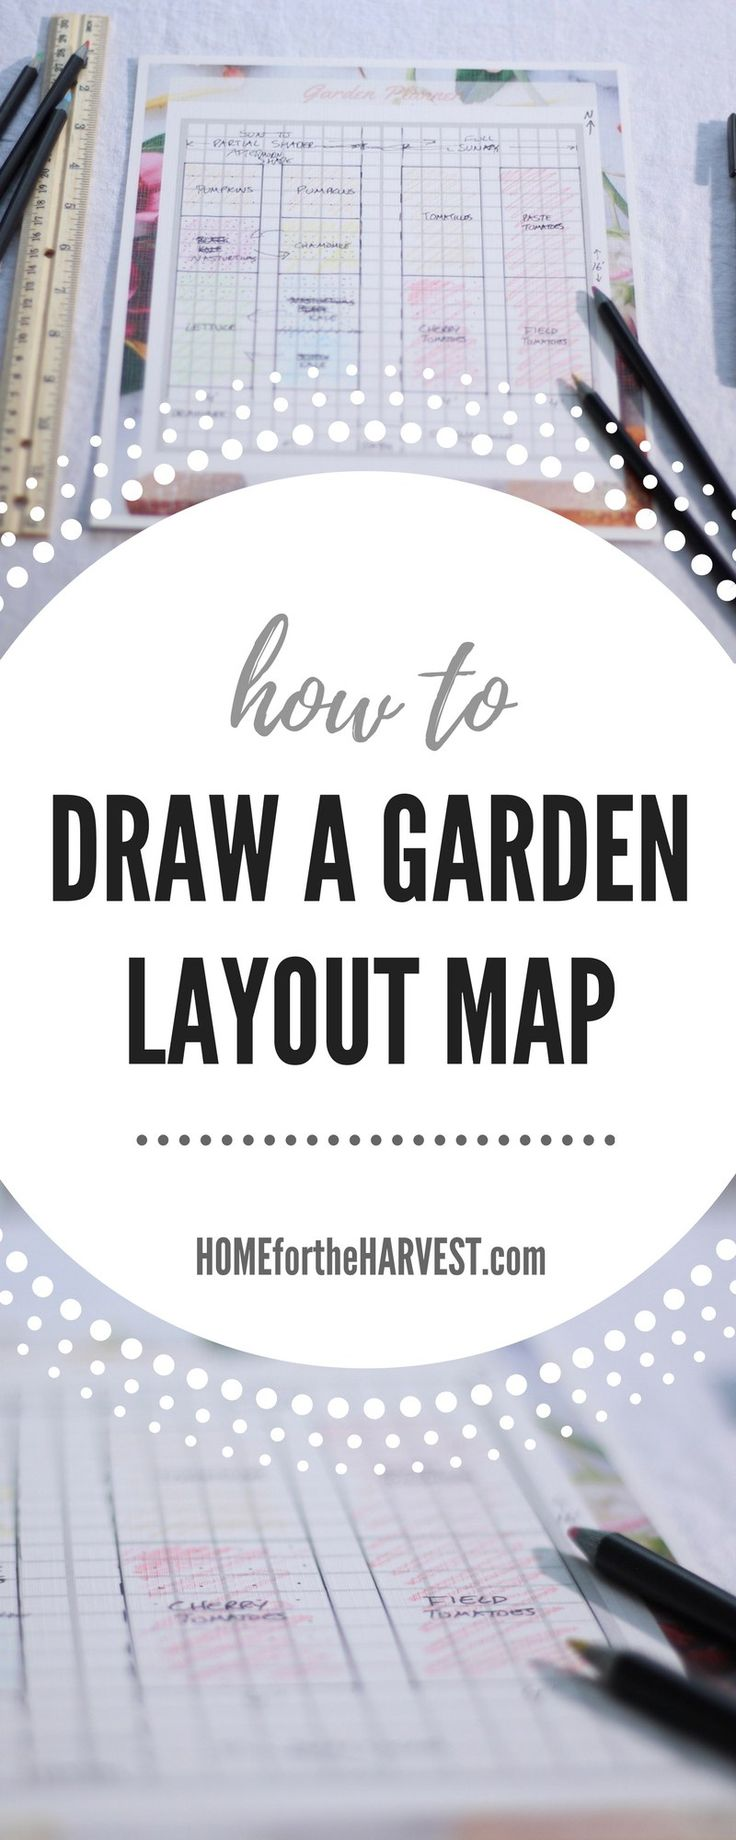 Garden Layout Ideas small vegetable garden layout ideas amazing creative and inspirational vegetable garden plans idea in How To Draw A Garden Layout Map A Key Part Of The Garden Planning Process